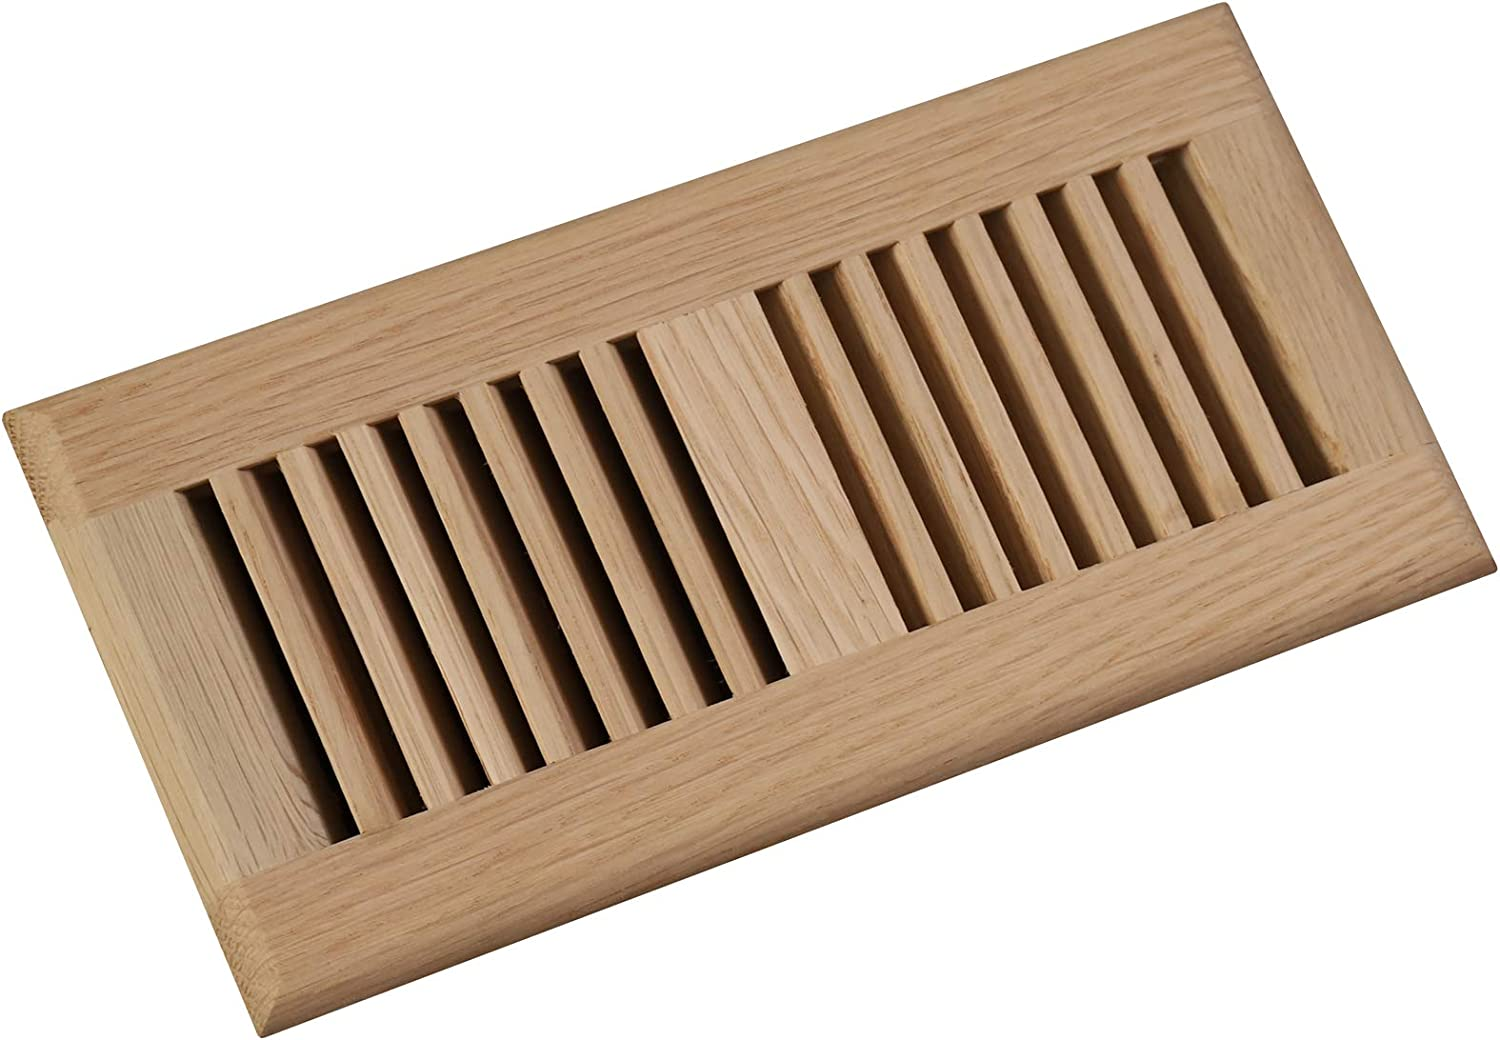 Welland 2 PCS Set White Oak 4-inch by 10-Inch Drop in Vents,3/4 inch Thickness Wood Vents Cover Floor Register,Unfinished.